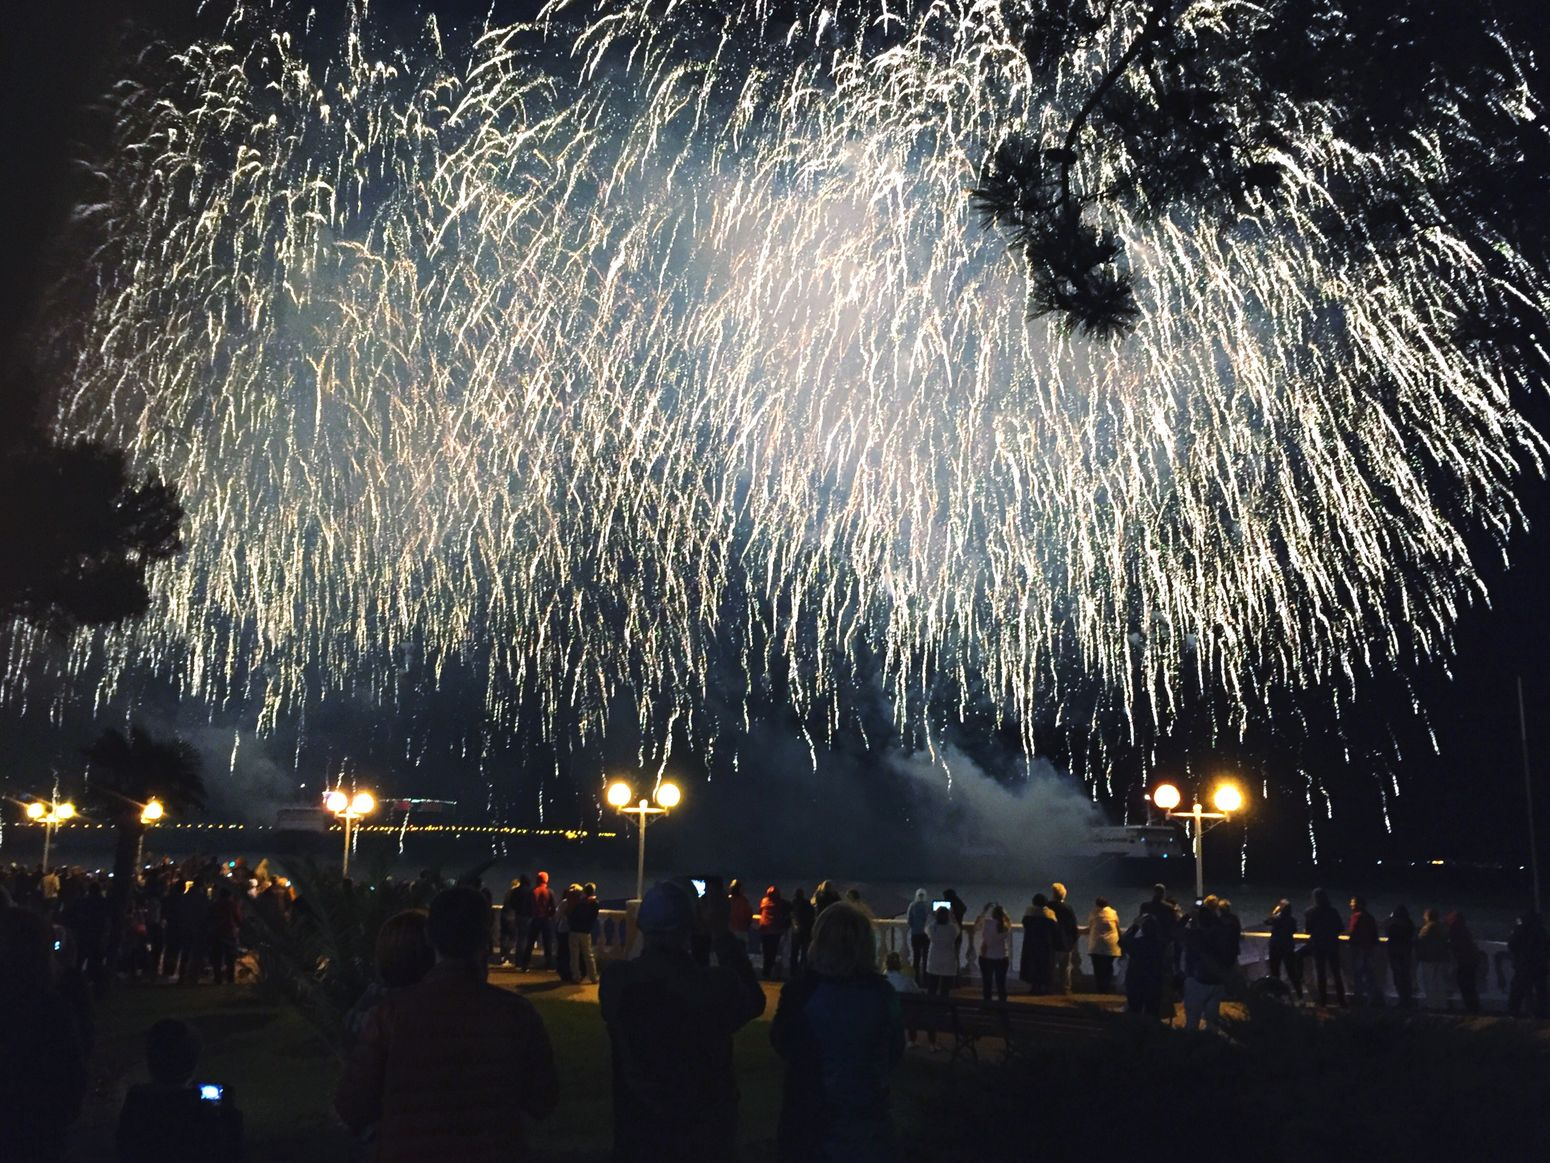 Lifestyles Firework Display Large Group Of People Firework - Man Made Object